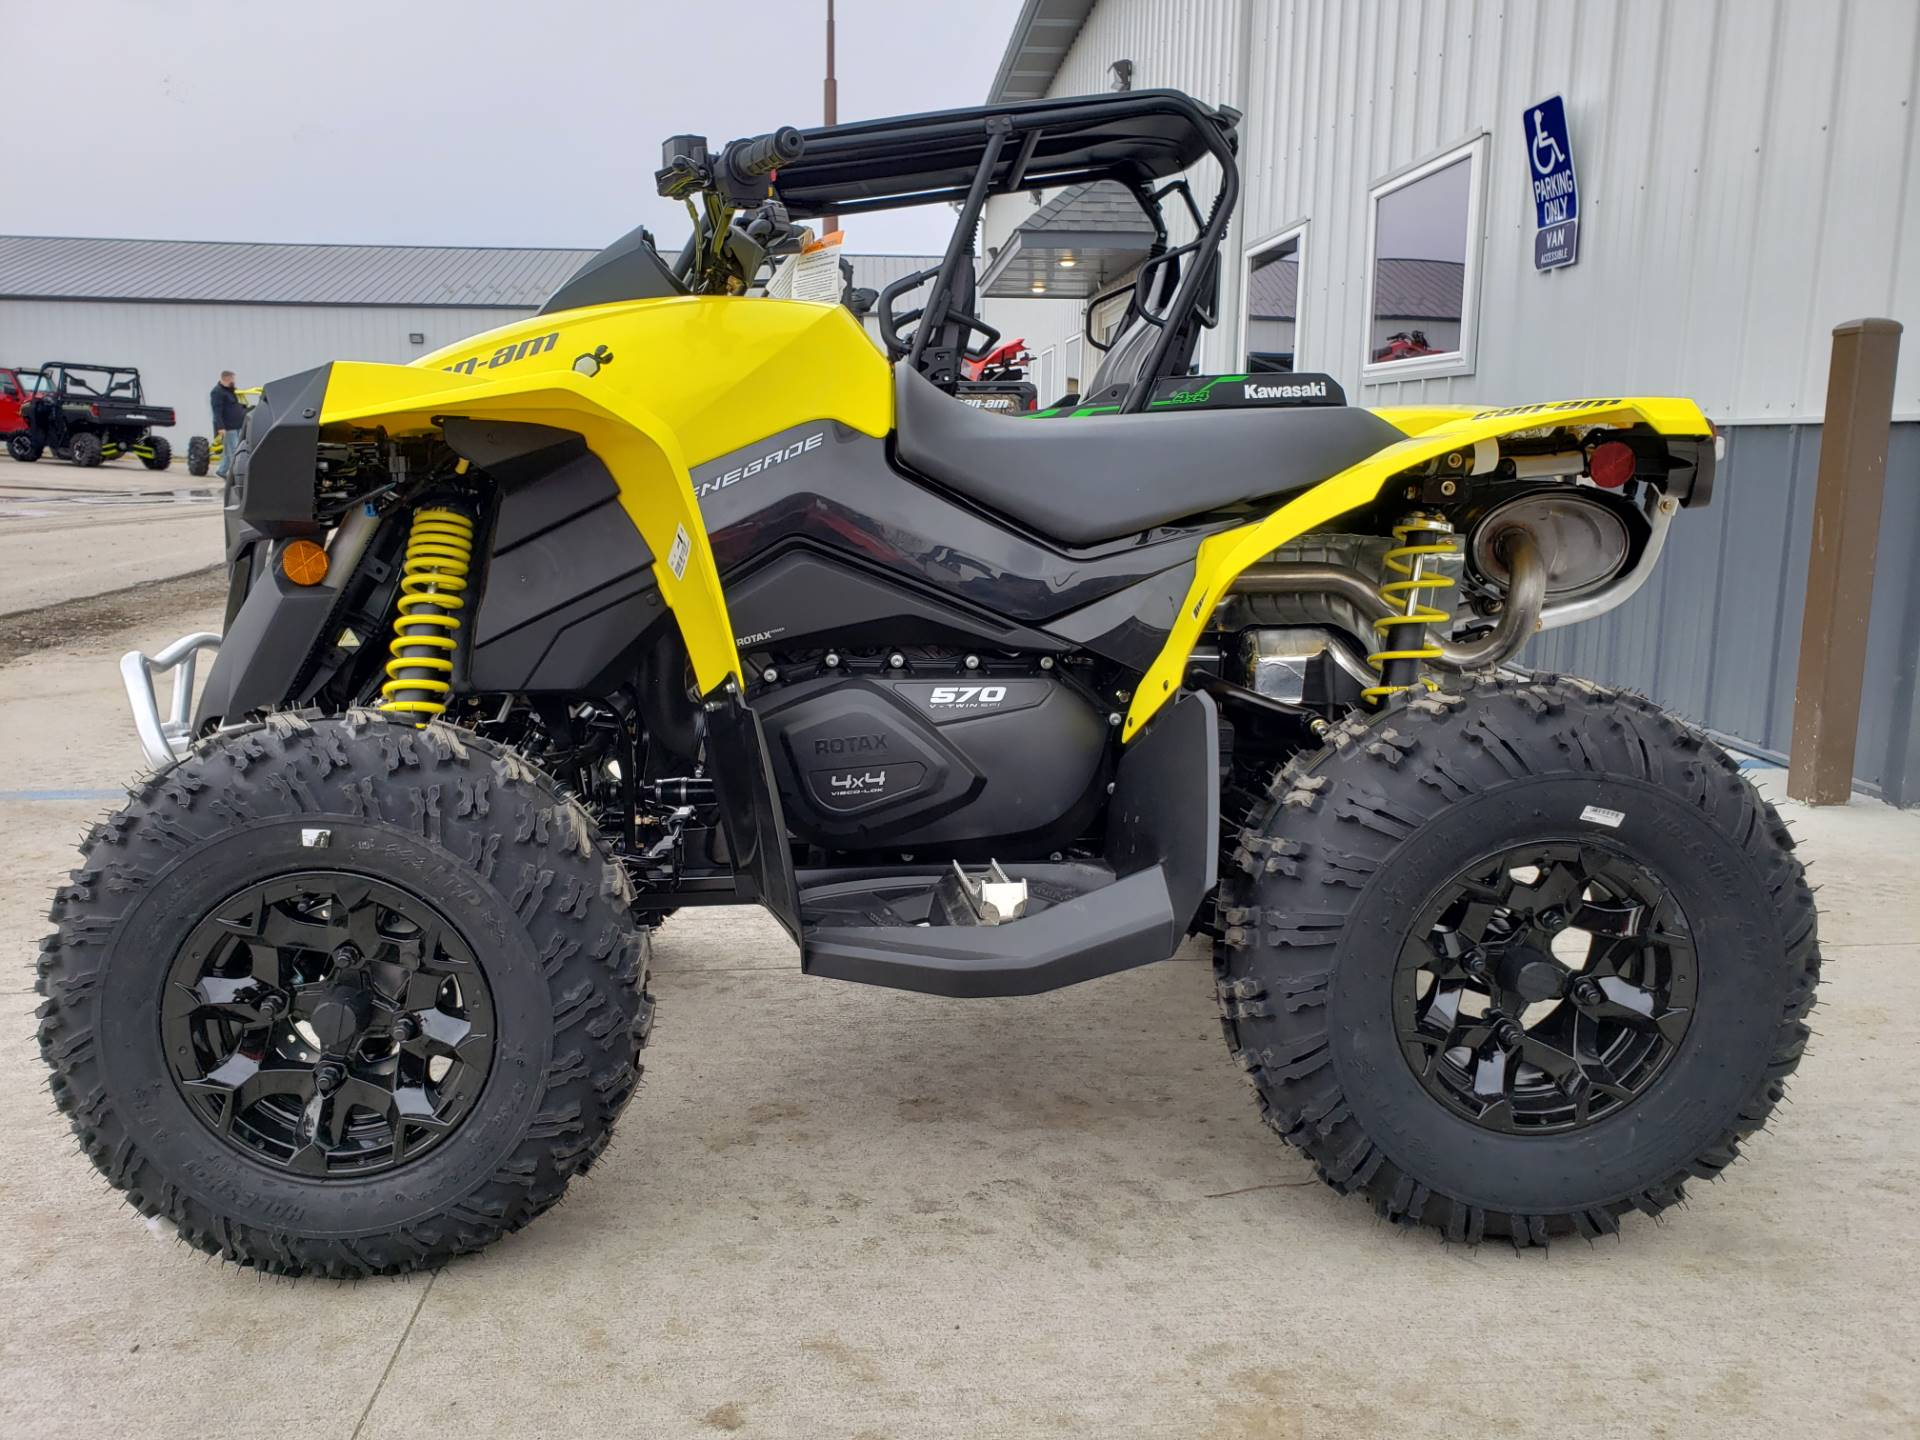 2020 Can-Am Renegade 570 in Cambridge, Ohio - Photo 5